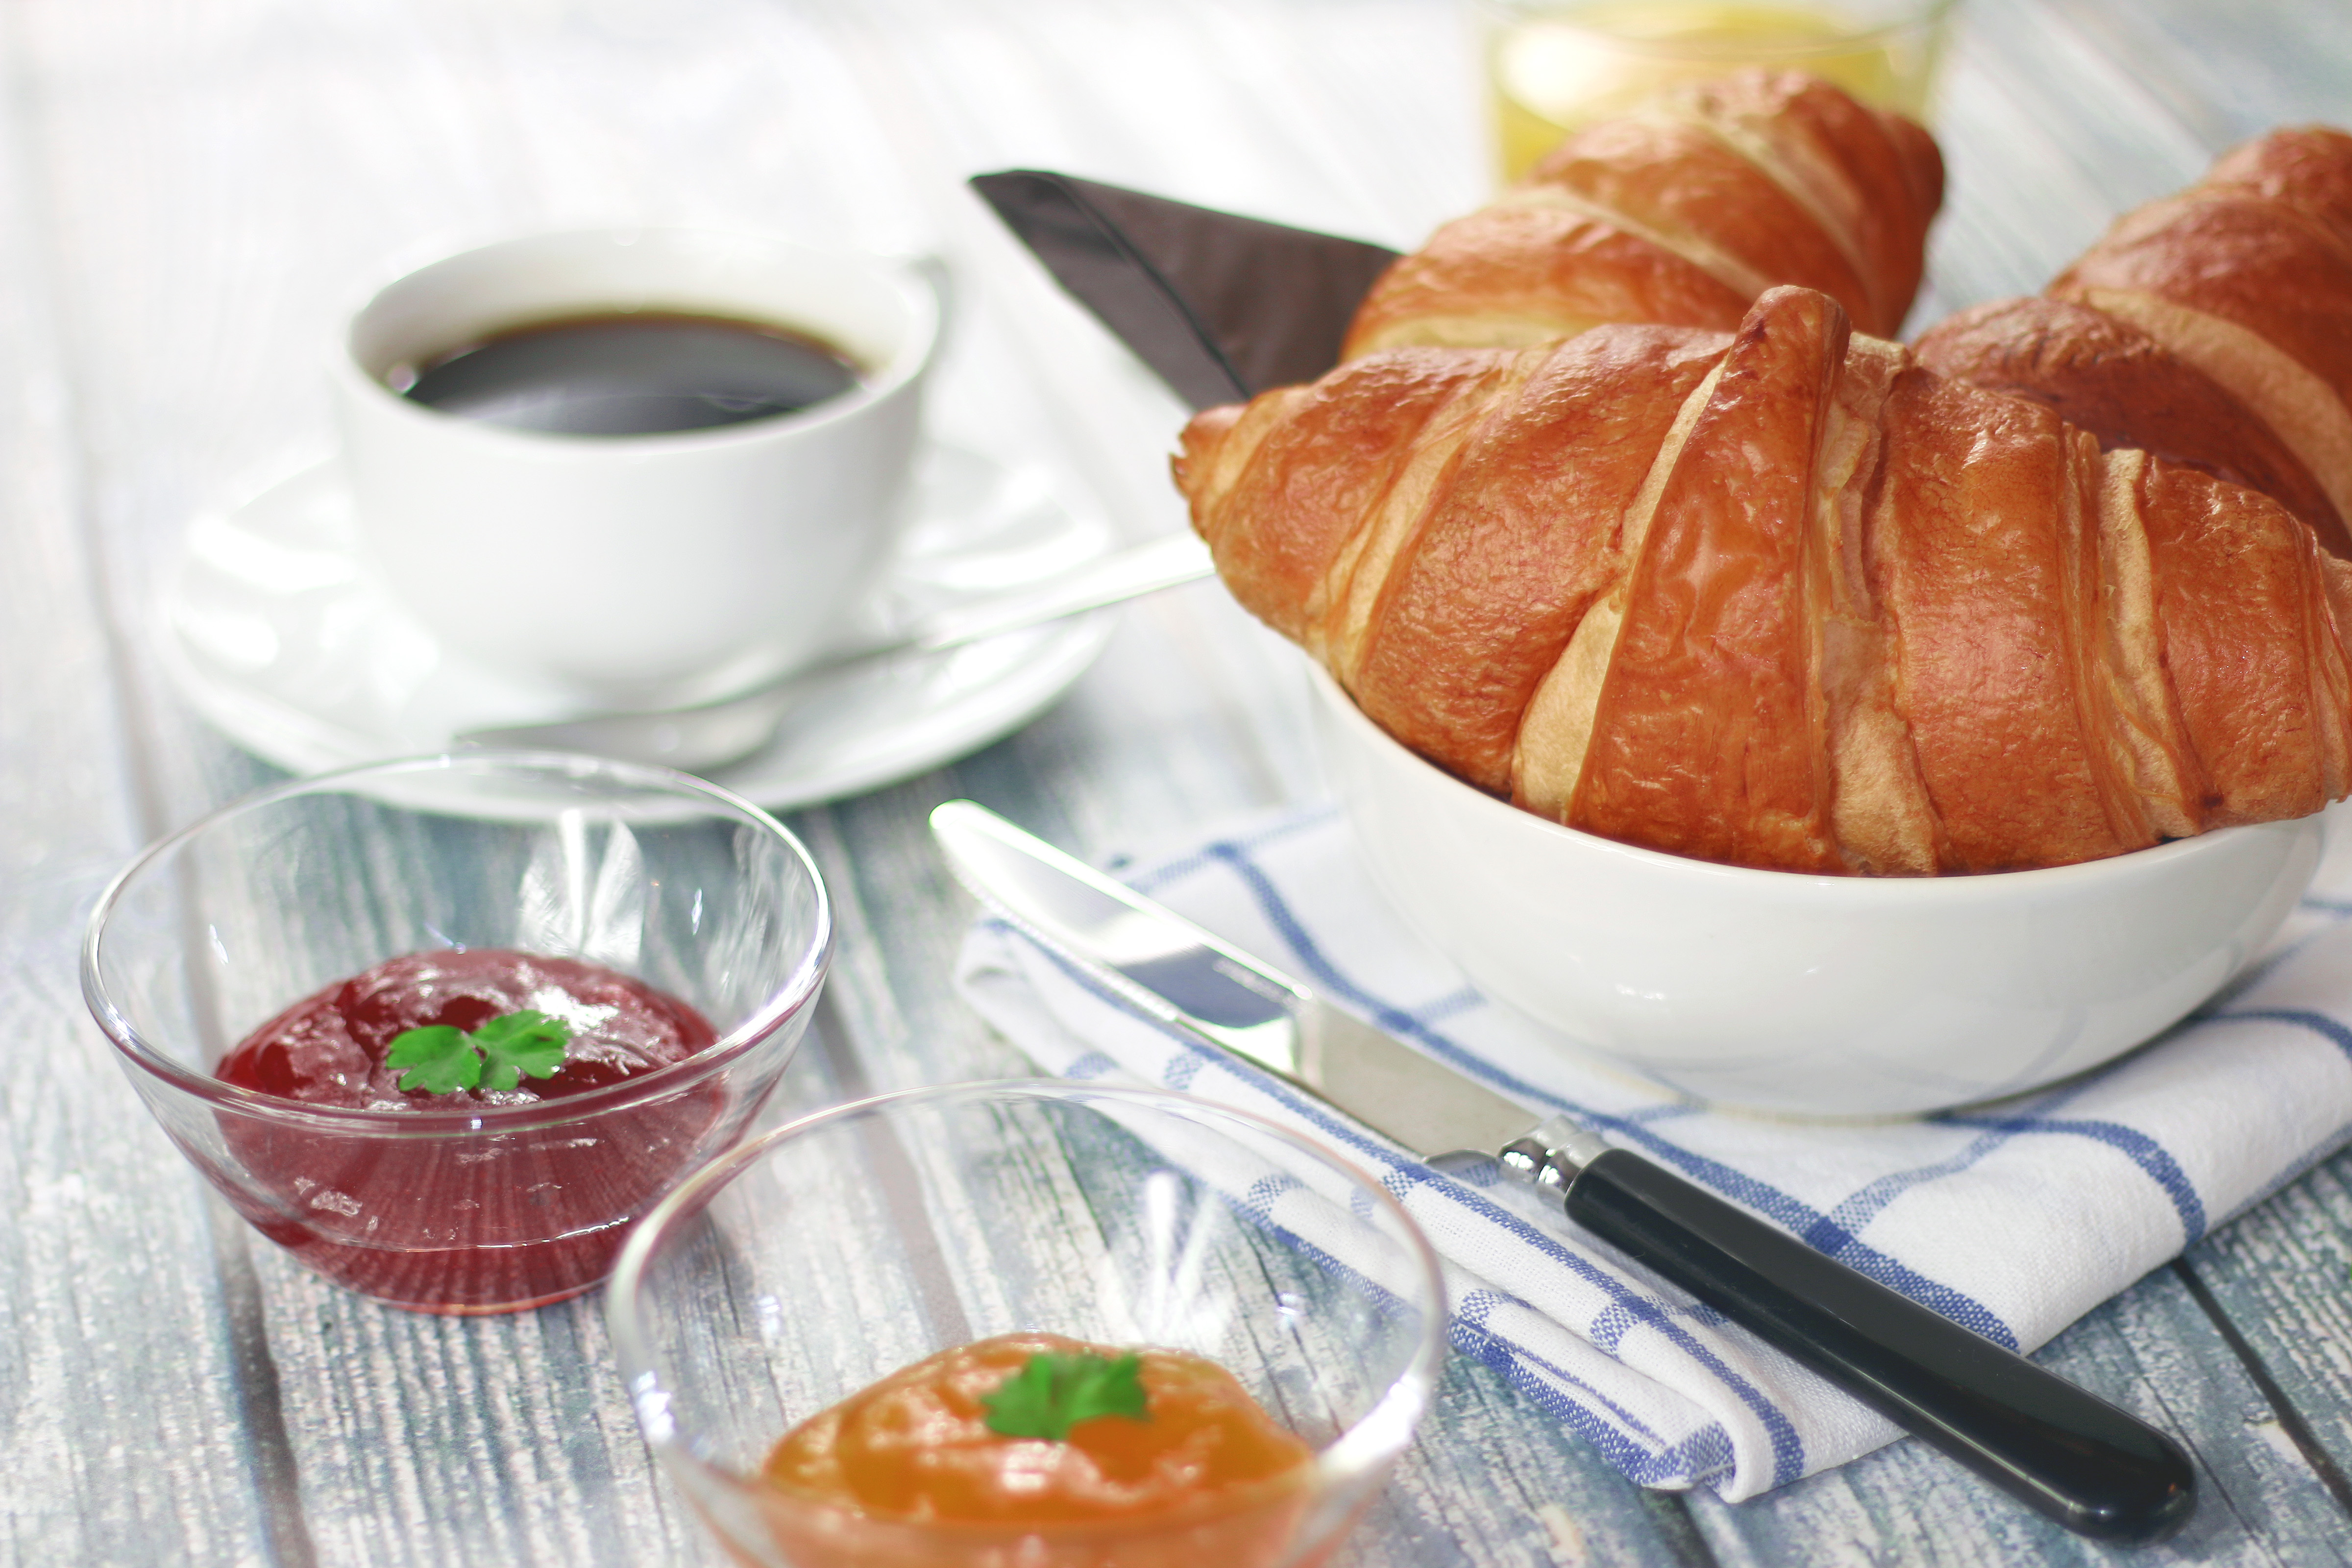 coffee-morning-breakfast-croissant.jpg (4800×3200)